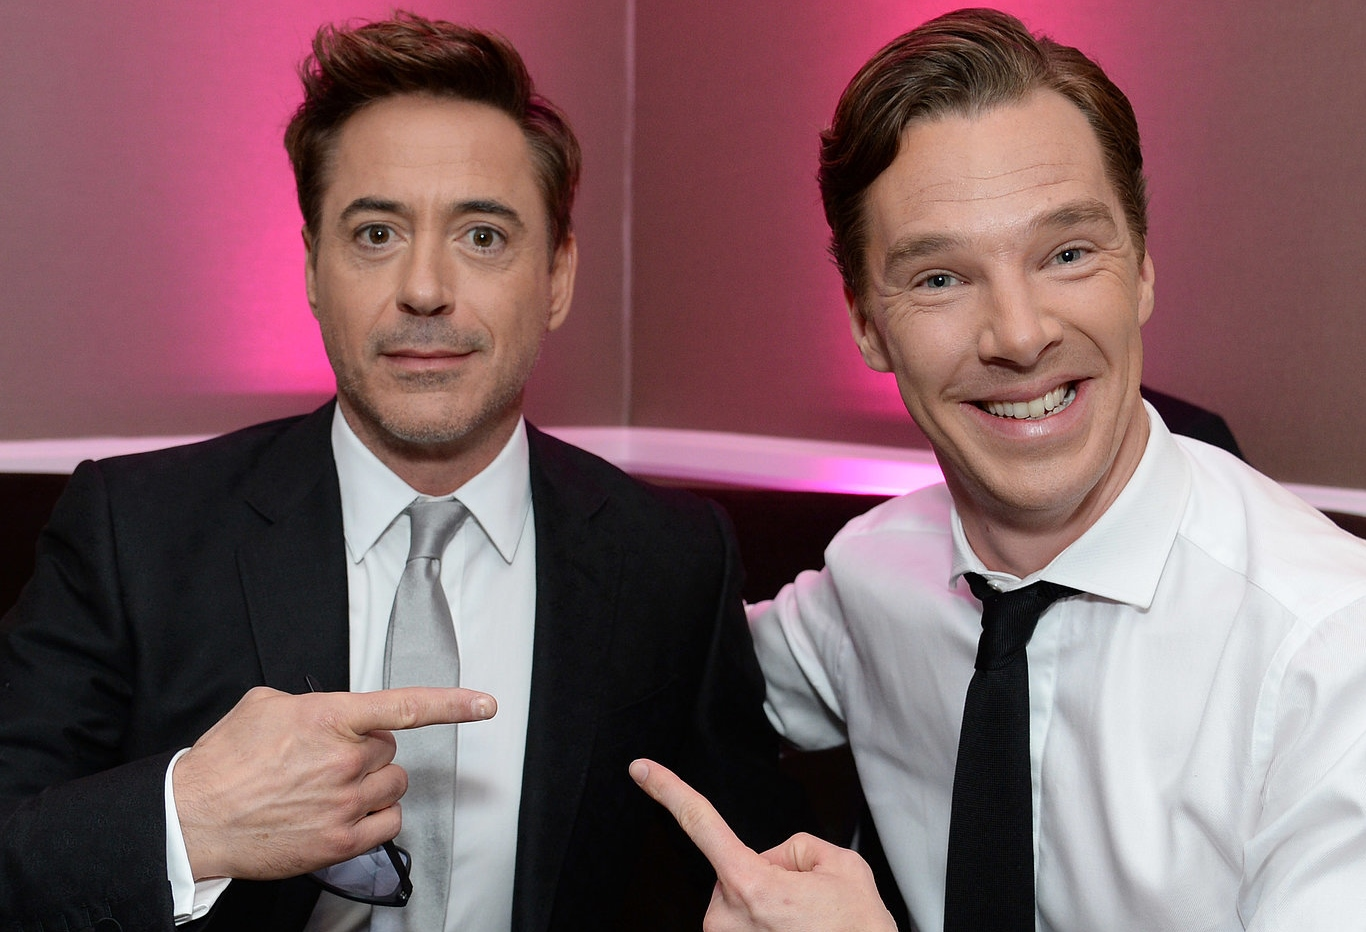 DOWNEY JR. AND CUMBERBATCH IN SHERLOCK XMAS SPECIAL